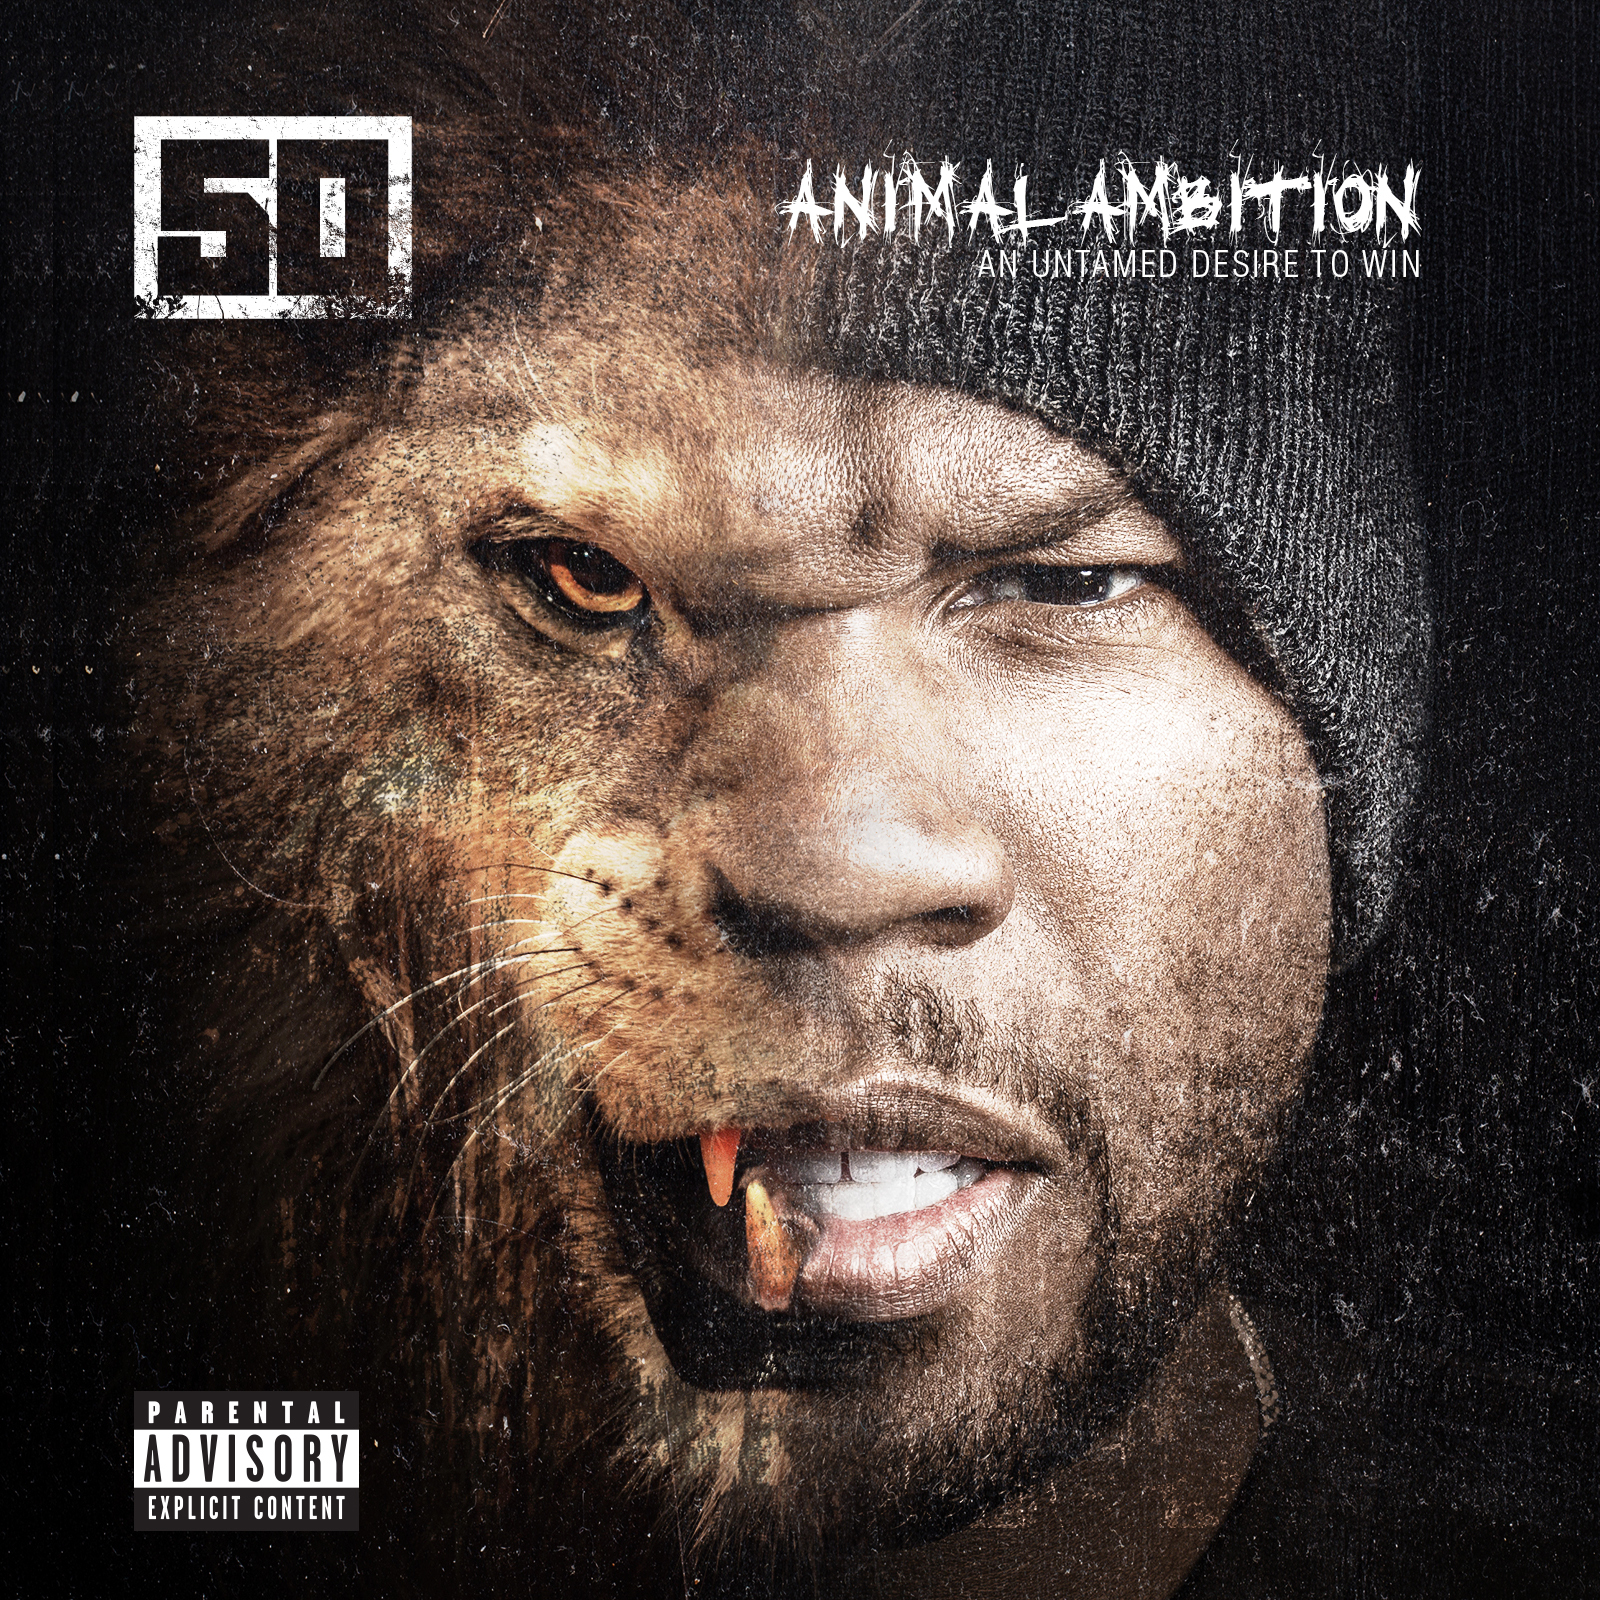 50 cent - review -Animal Ambition- An Untamed Desire to Win